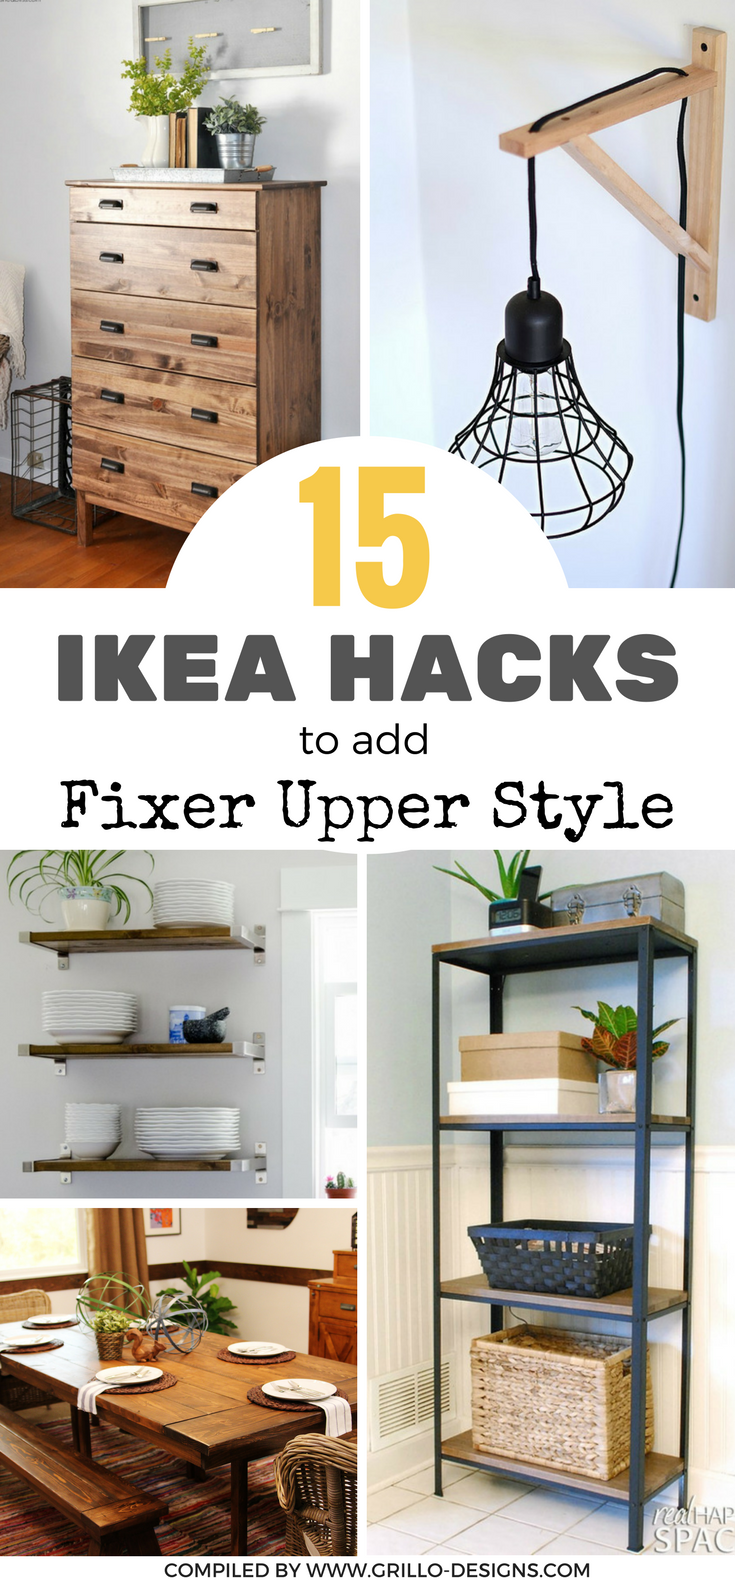 fixer upper style ikea hacks for a farmhouse appeal diy. Black Bedroom Furniture Sets. Home Design Ideas